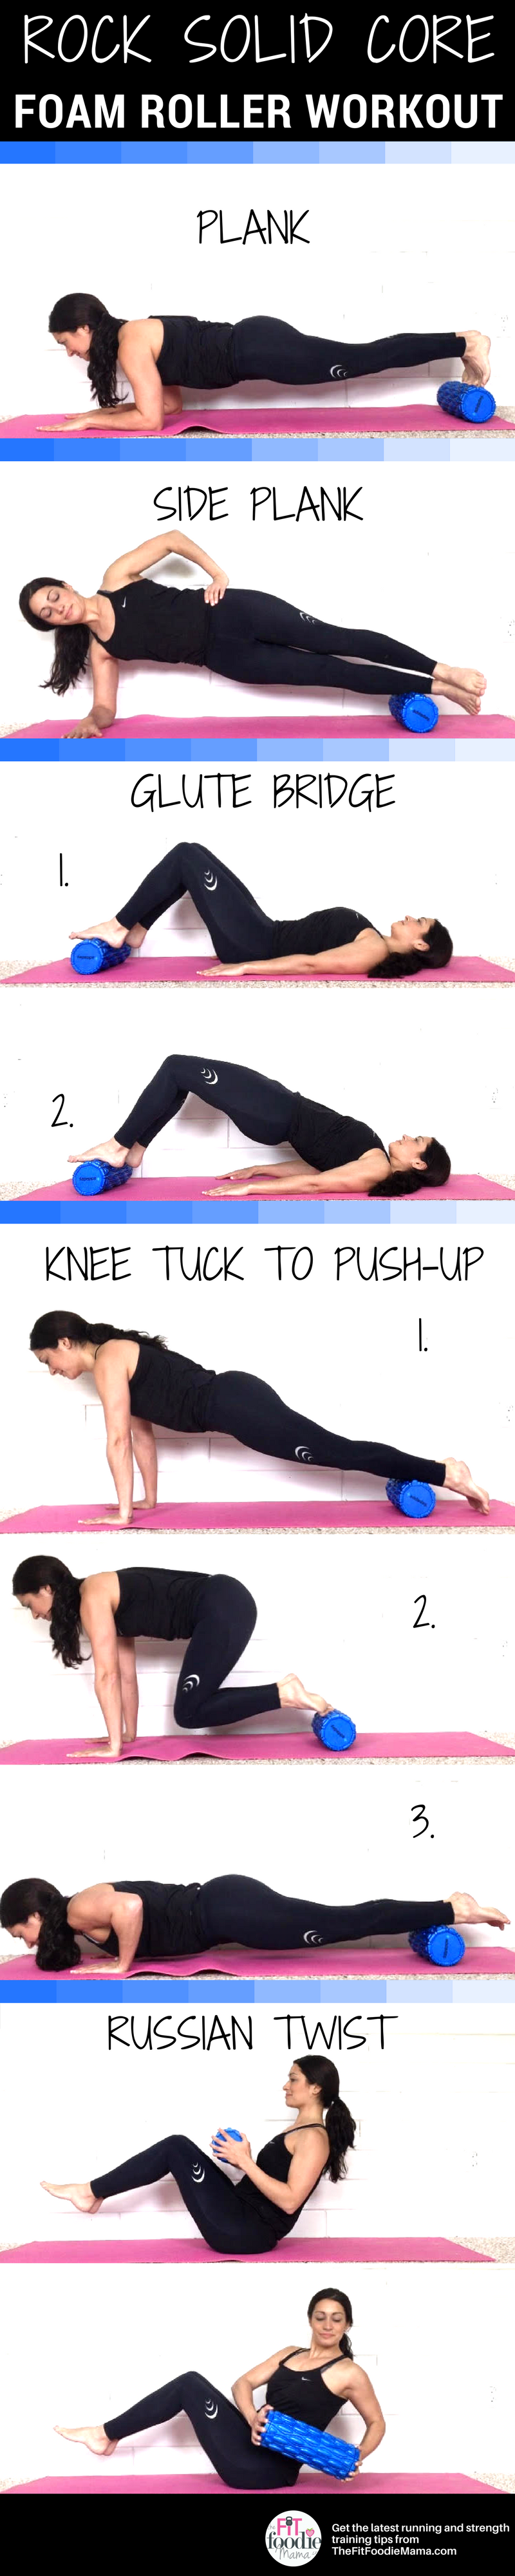 Massage your tired muscles while you work up a sweat with this Rock Solid Core Foam Roller Workout! Add it to your running or strength training routine weekly to get stronger so you can run faster.